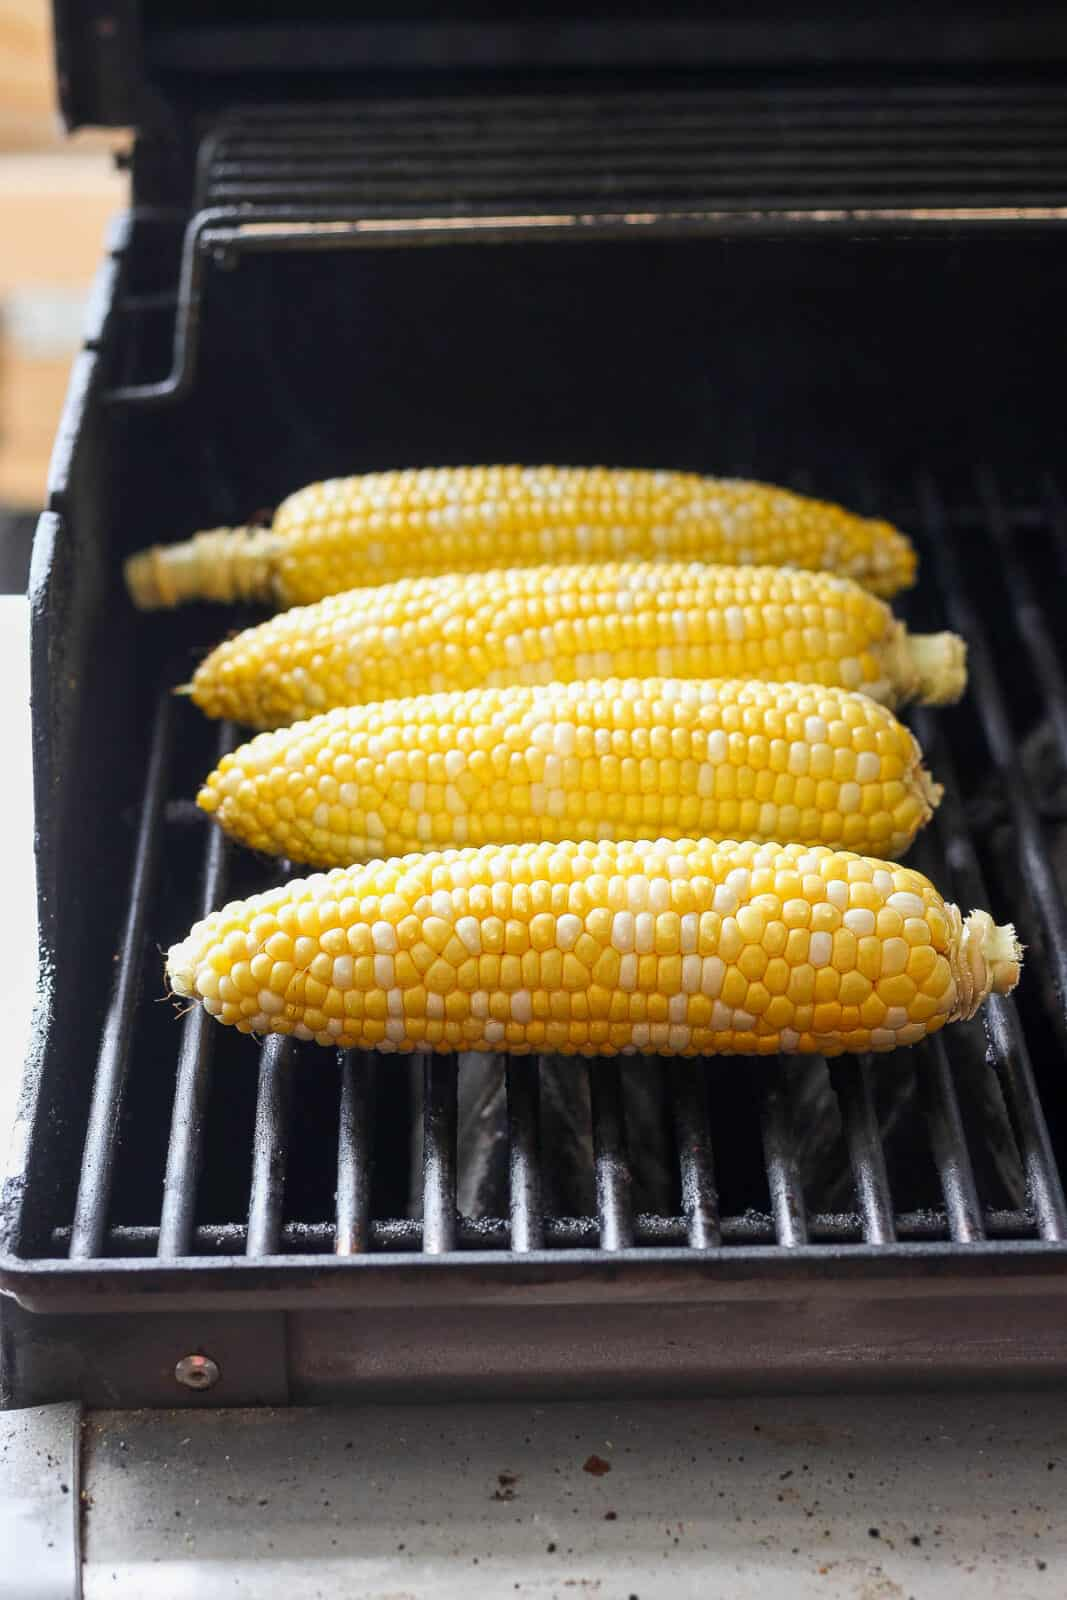 Four pieces of sweet corn on the grill.